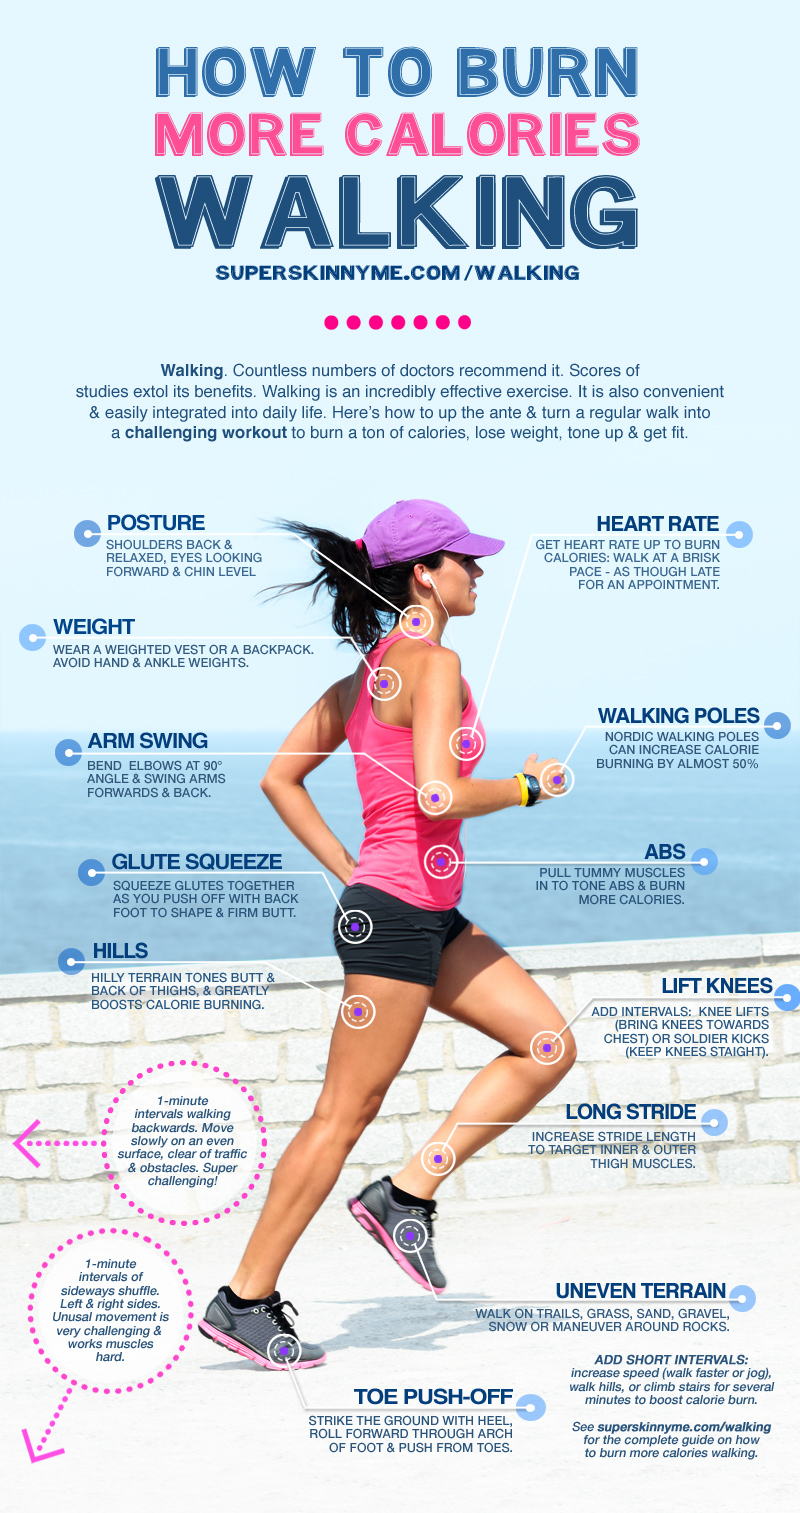 c How-To-Burn-More-Calories-Walking-Infographic